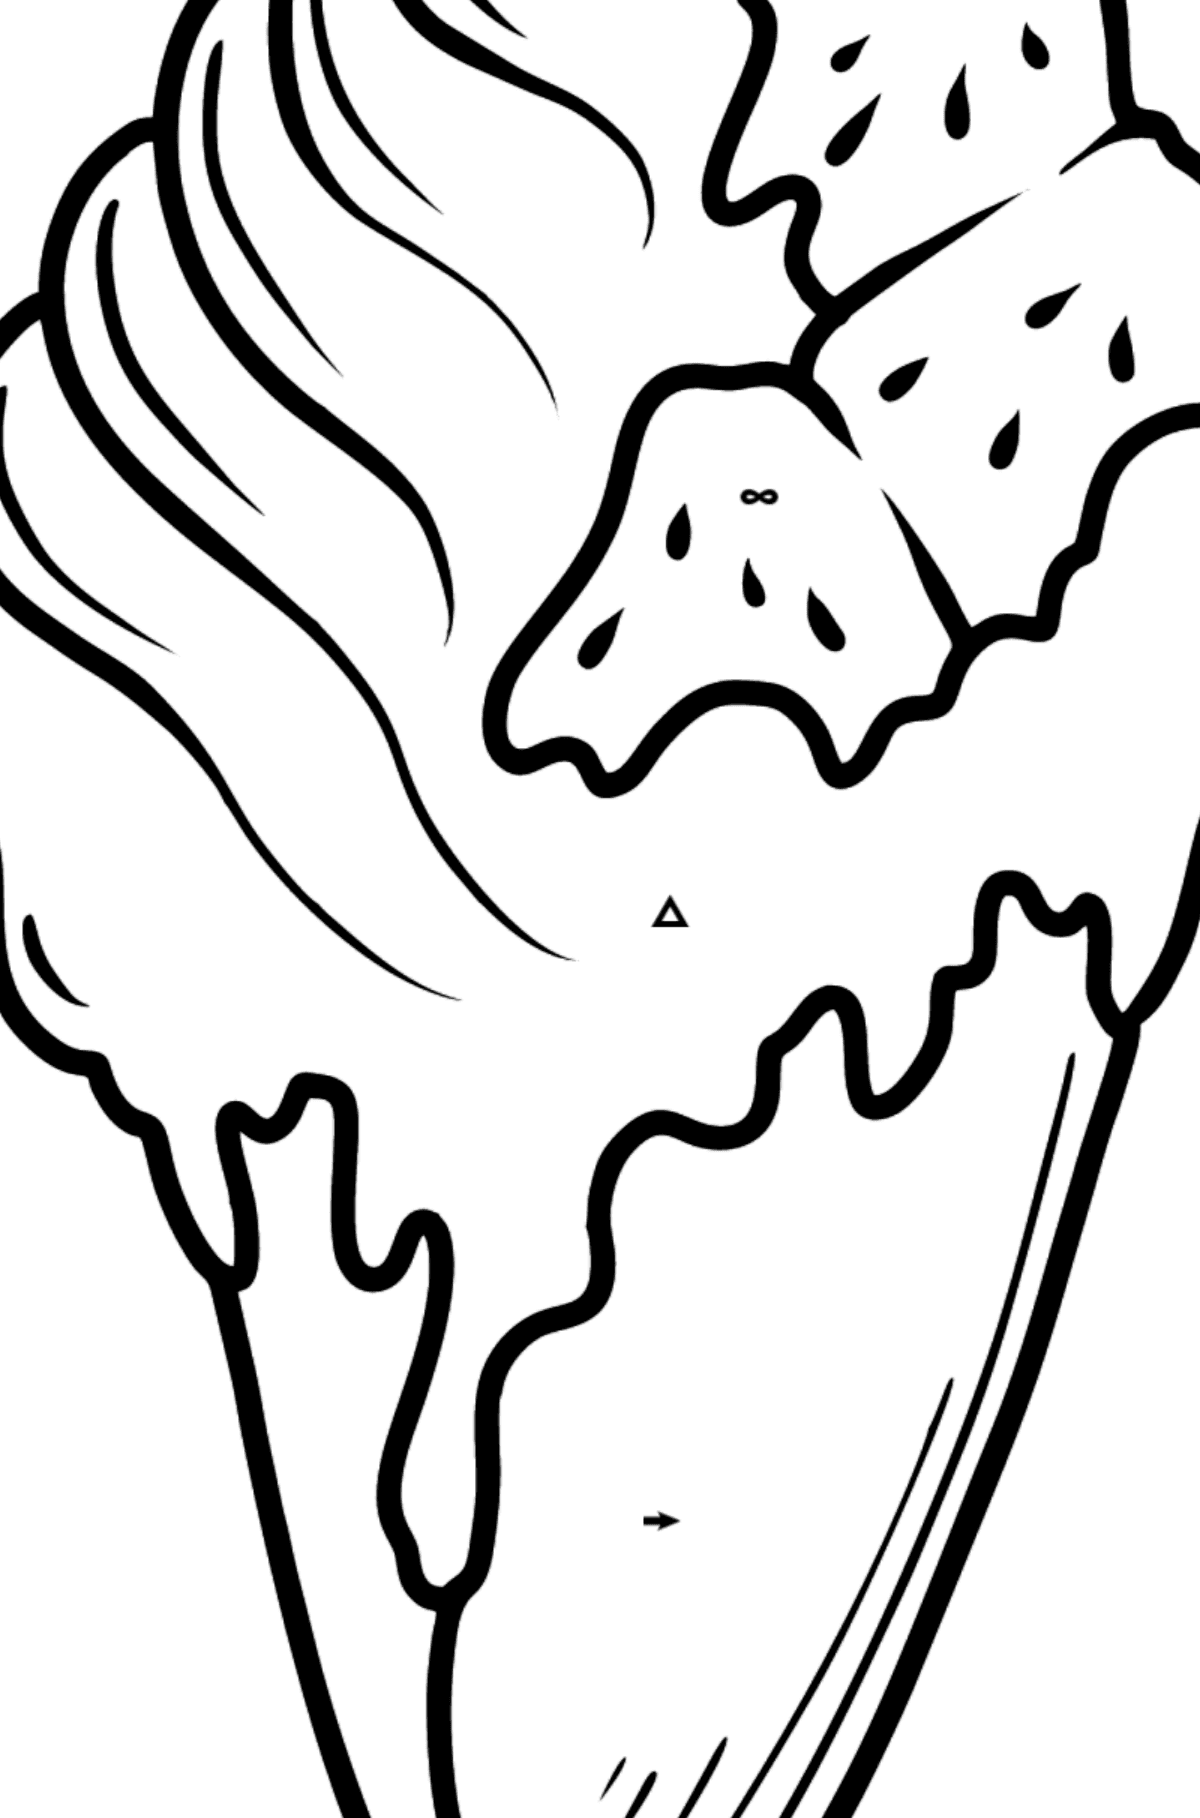 Banana Ice Cream and Jam Cone coloring page - Coloring by Symbols for Kids